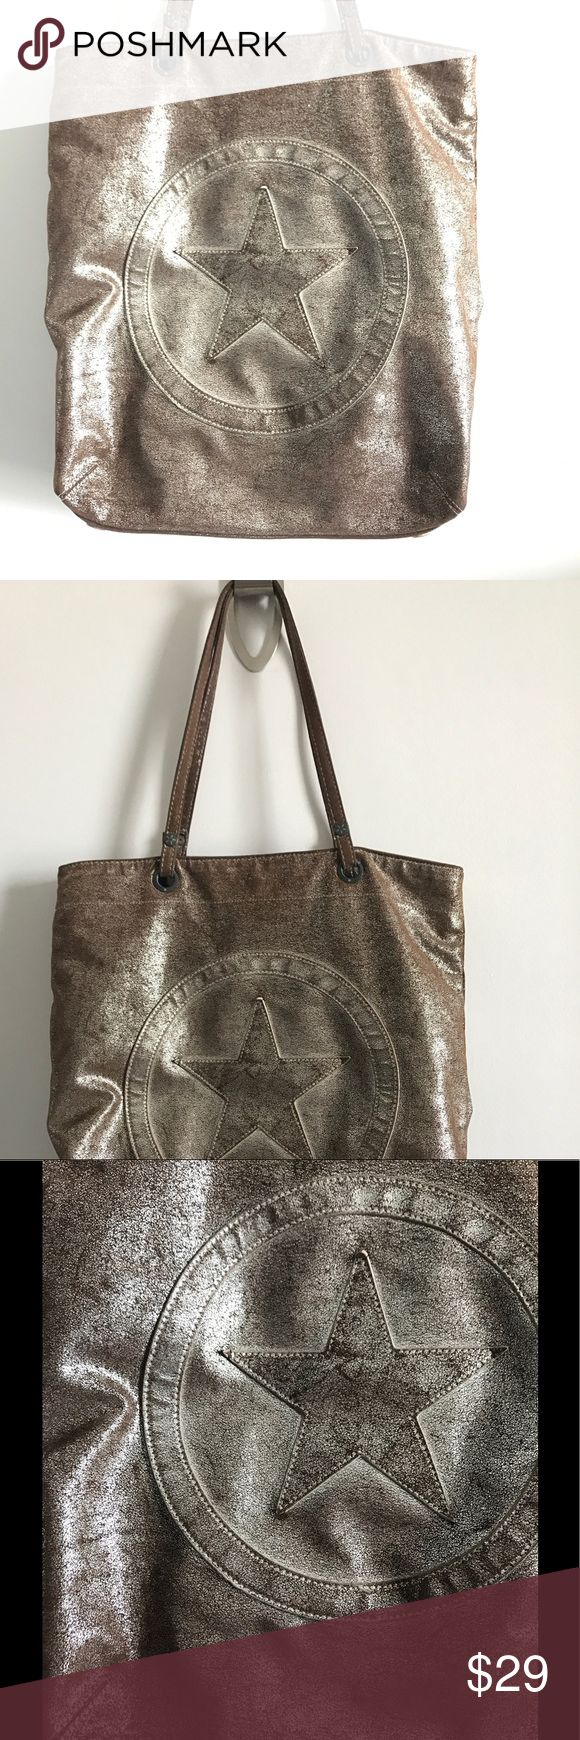 Converse bag sport perfect for the gym distressed Magnet clousure zipper pocket inside Converse Bags Totes